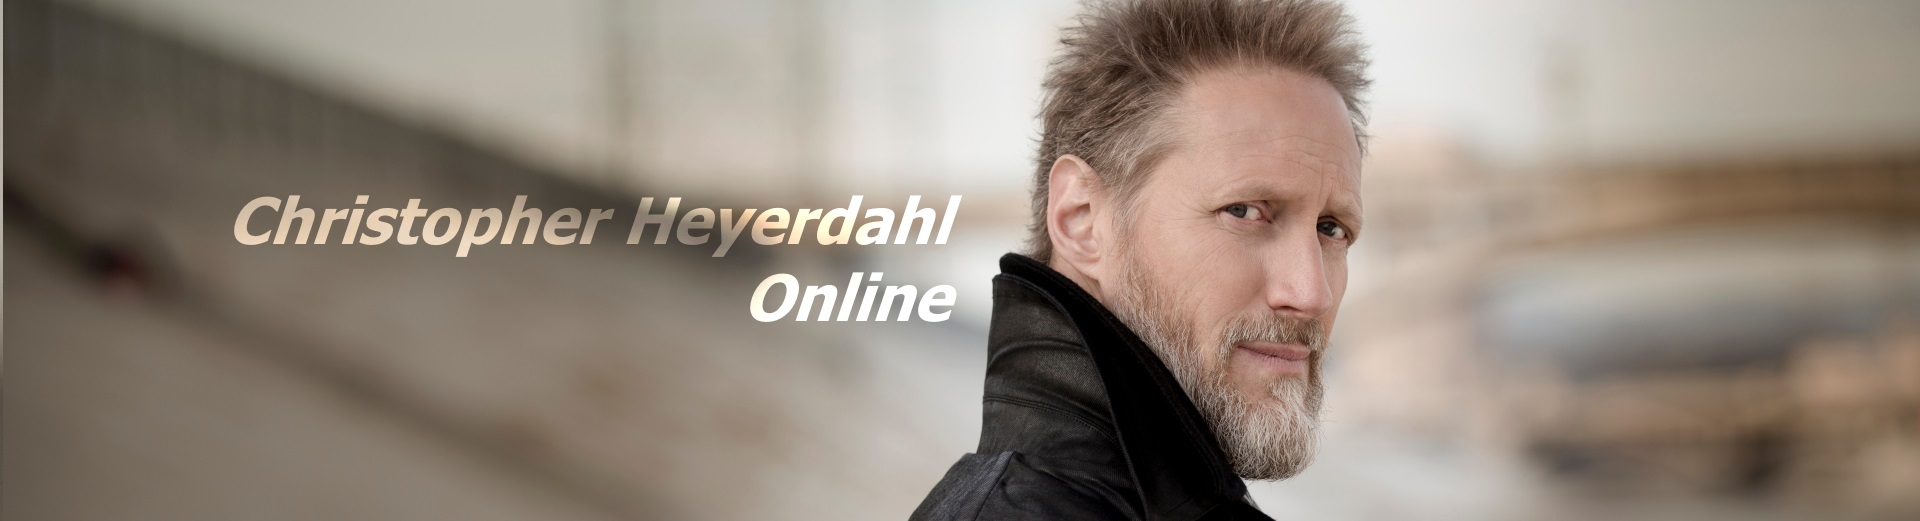 Christopher Heyerdahl Online Forum